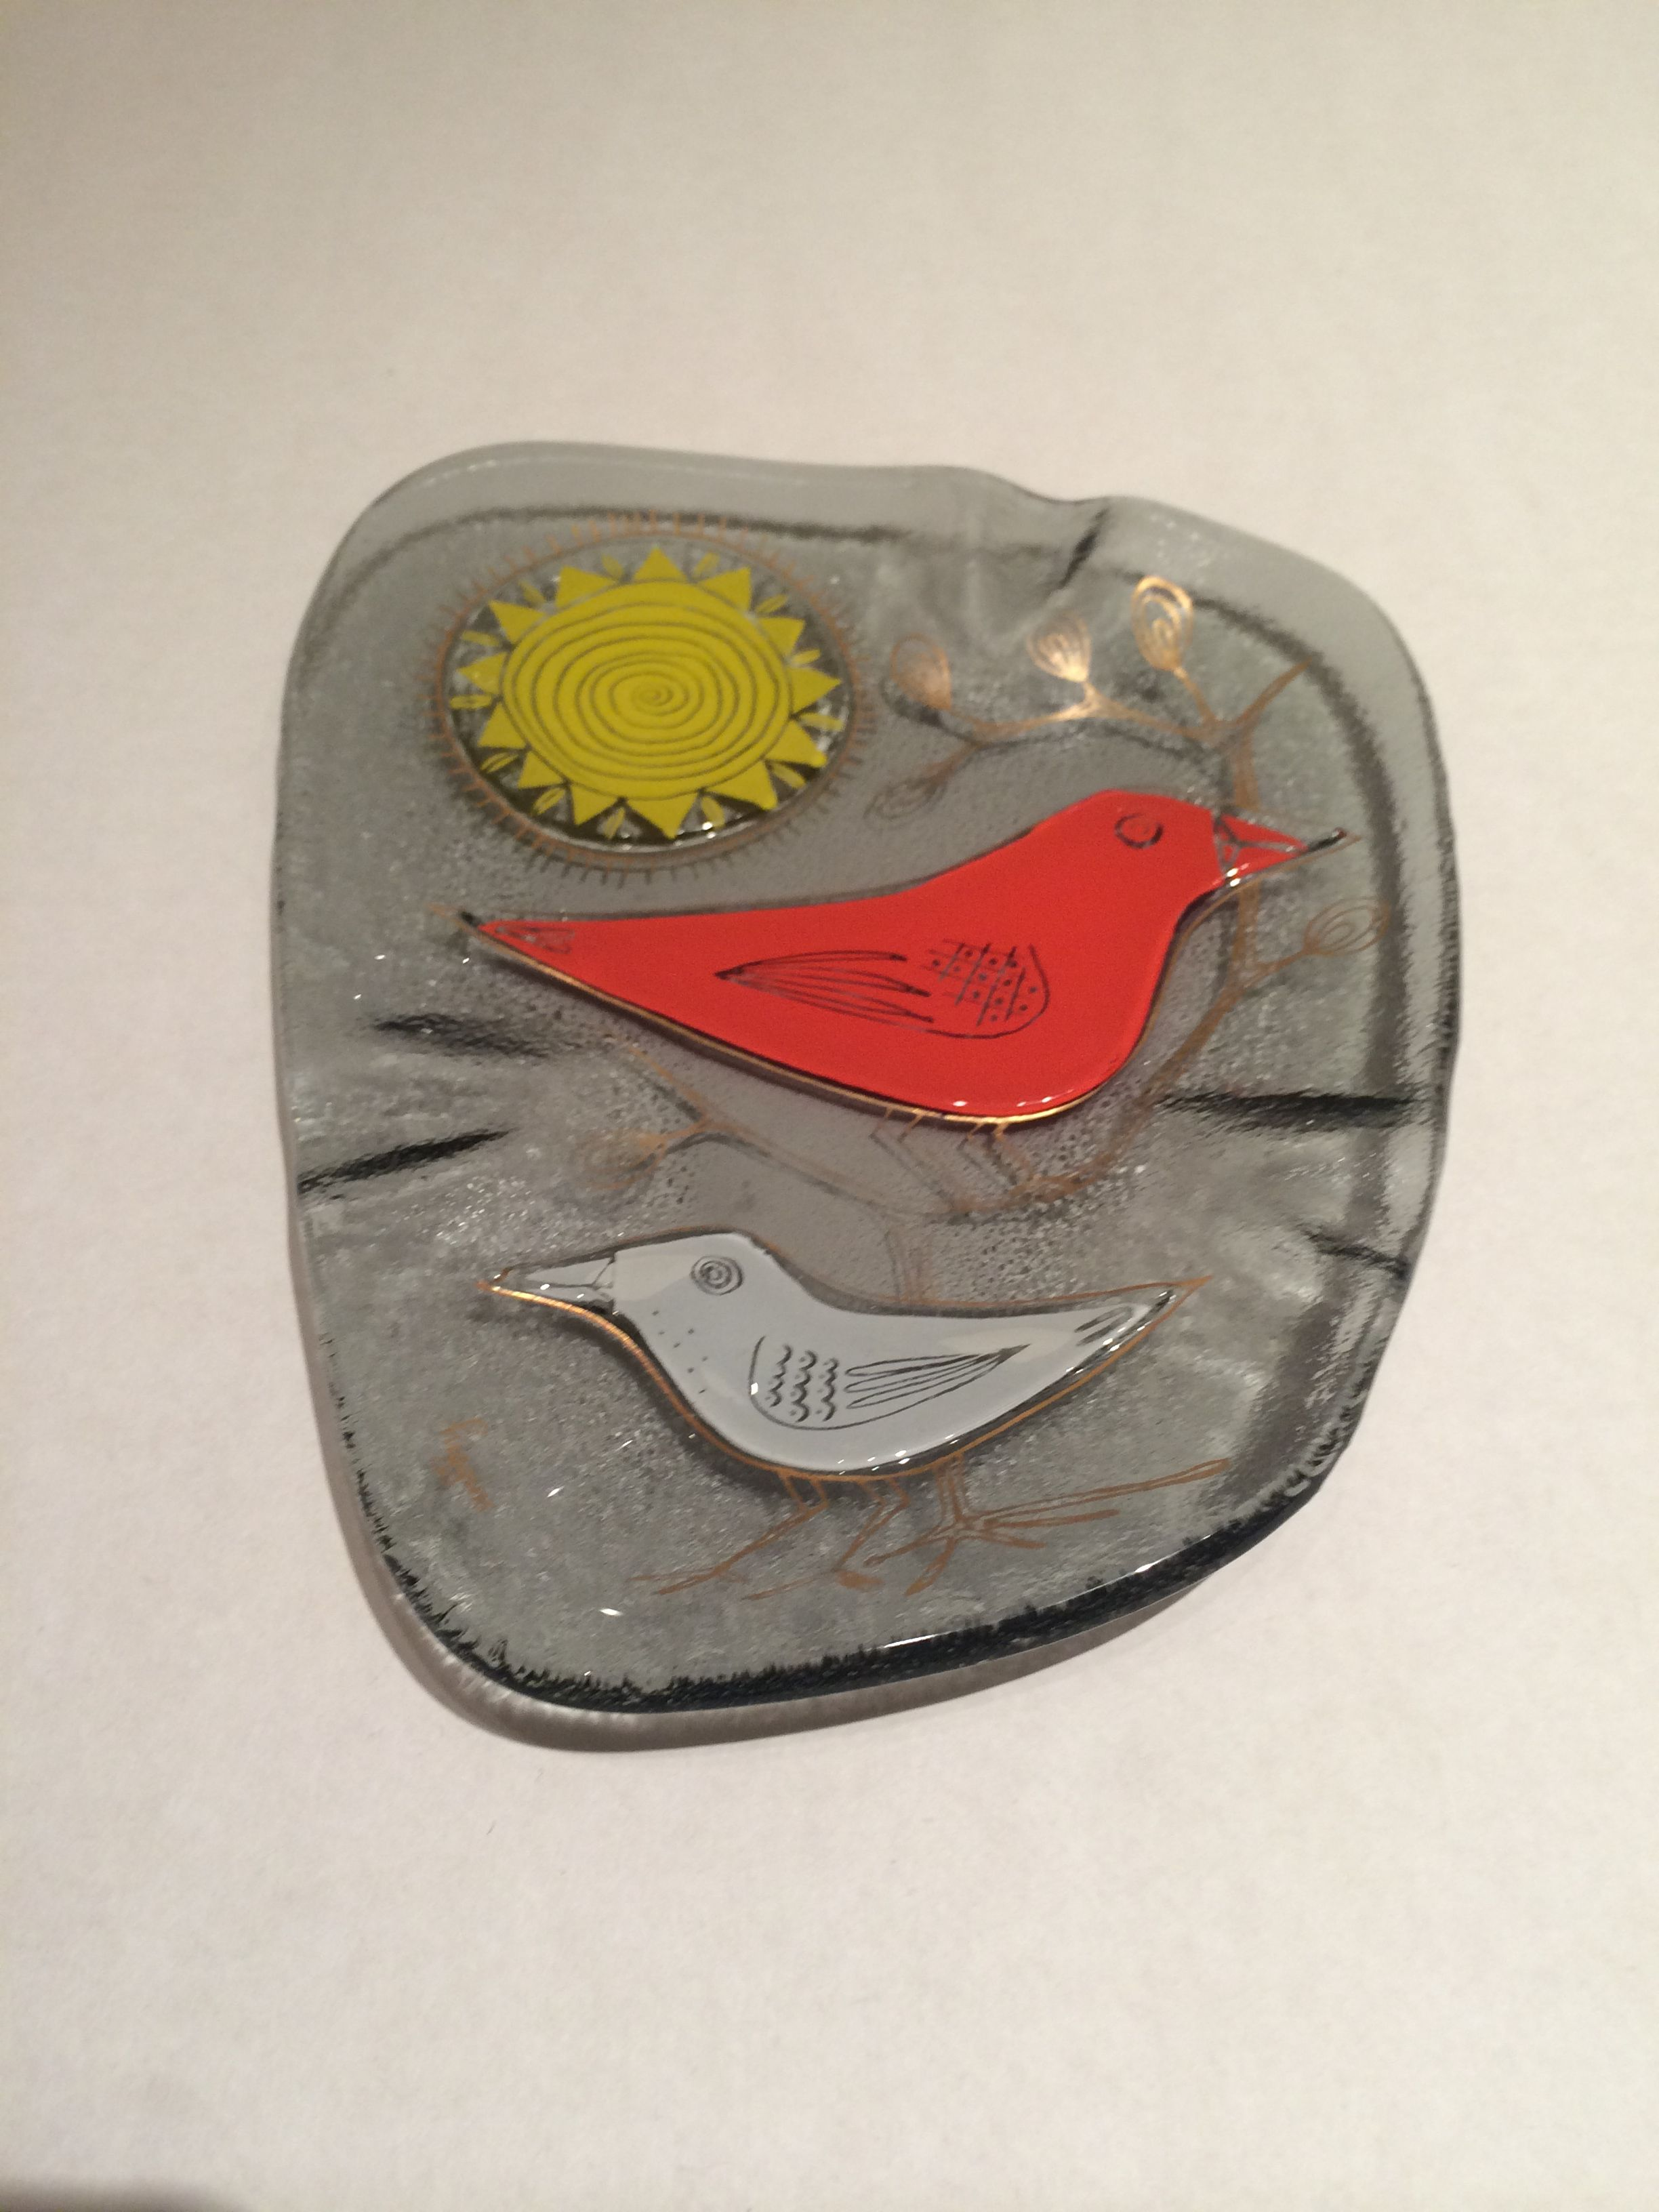 Fused Glass Dish/Ashtray w Birds and Sun Handmade by Higgins USA